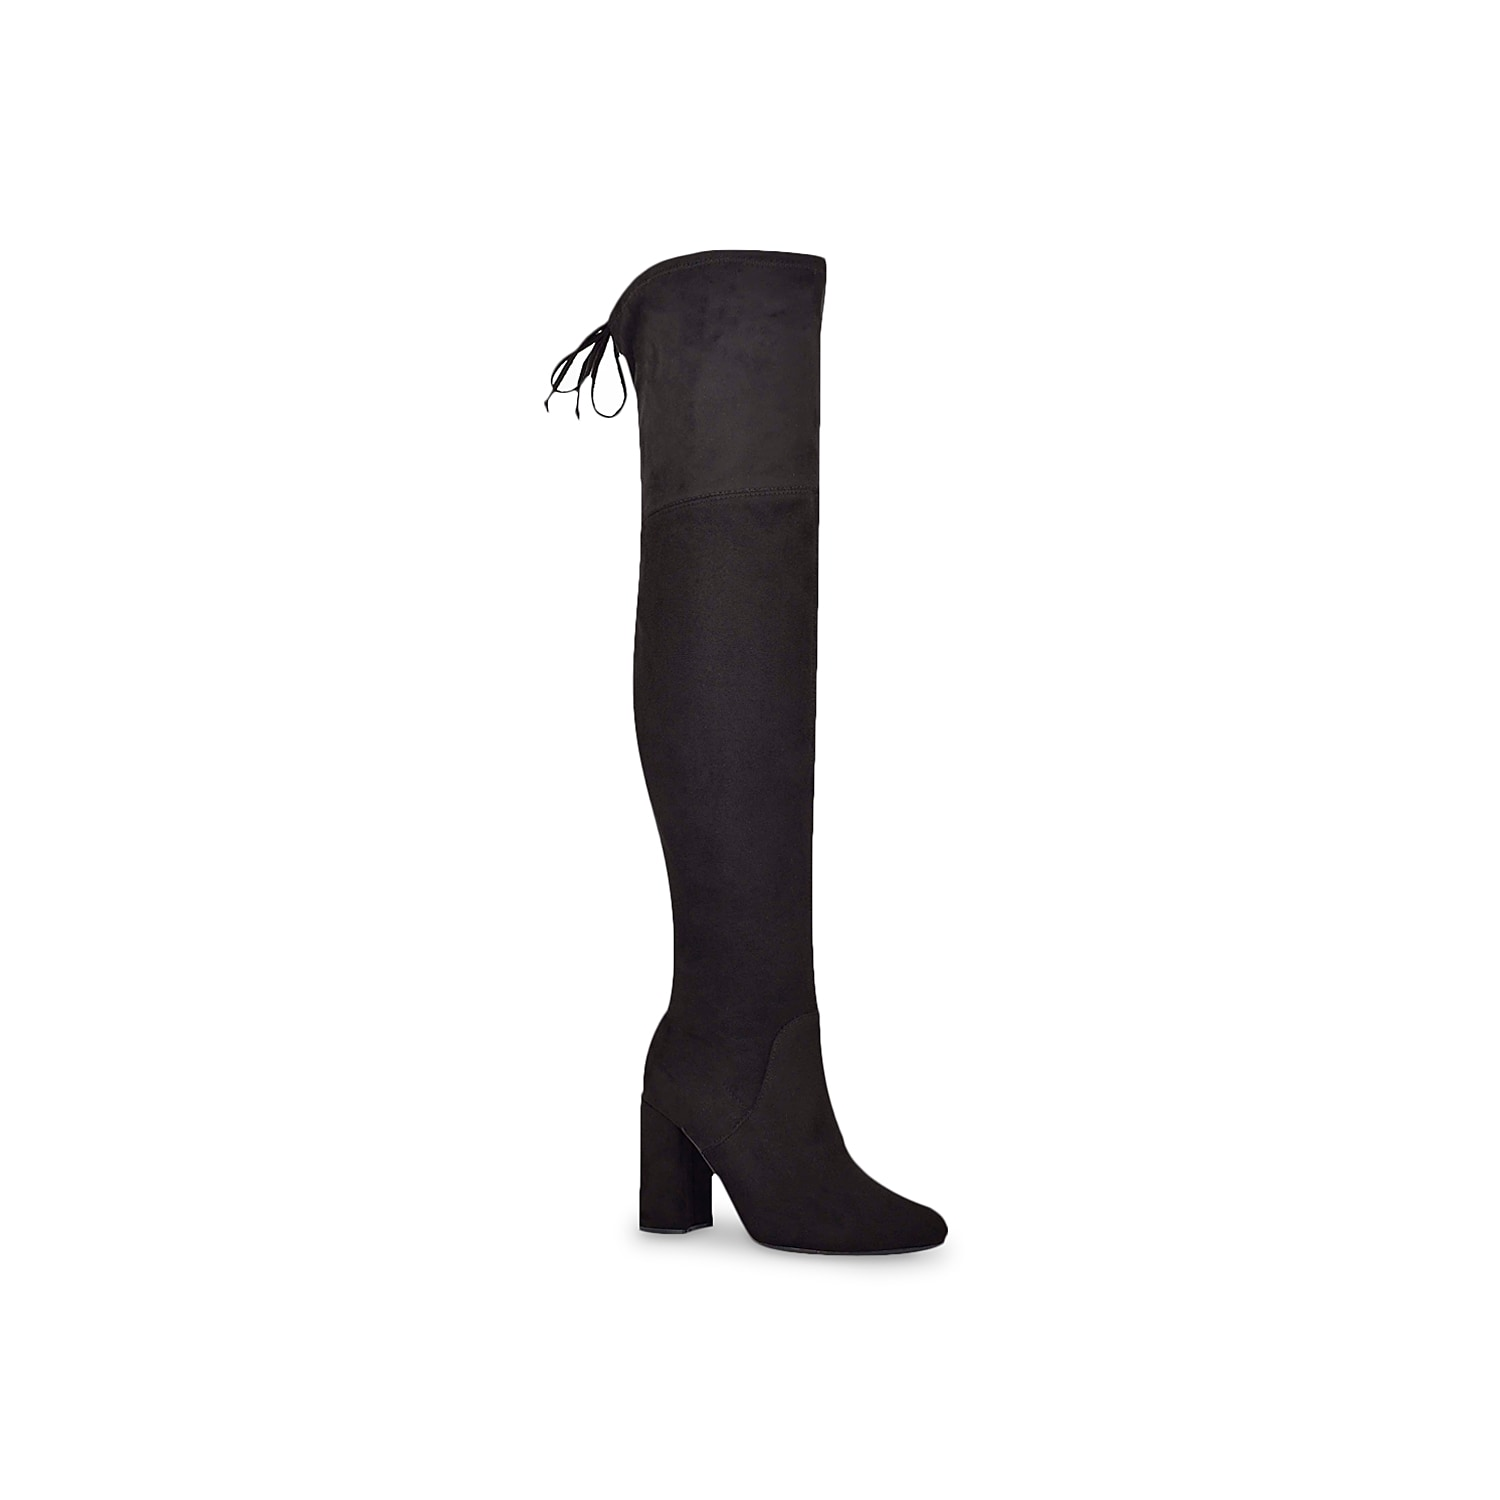 You can\\\'t go wrong with the Jaydi over the knee boot from Unisa. The skin-tight stretch design and chunky block heel keeps any cool weather look right on trend.Click here for Boot Measuring Guide.